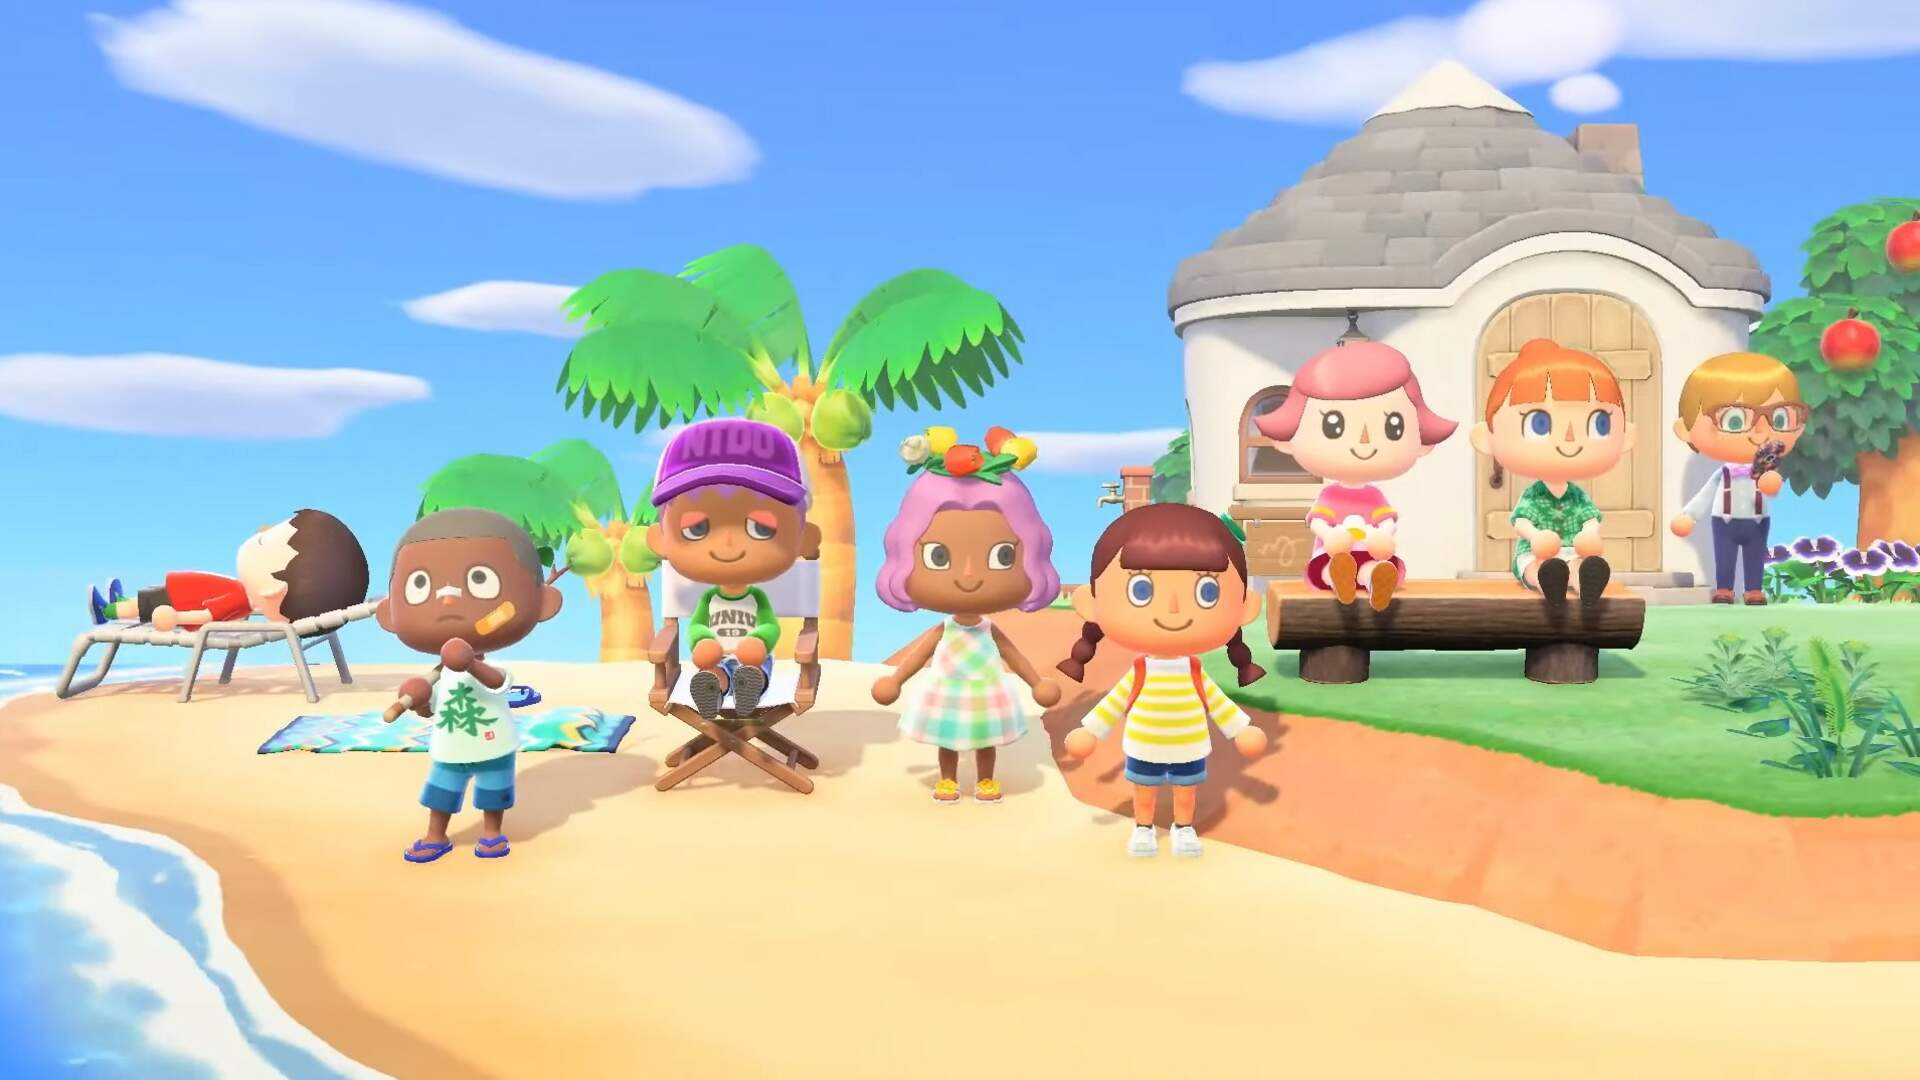 Does Animal Crossing New Horizons Have Local Co-Op?